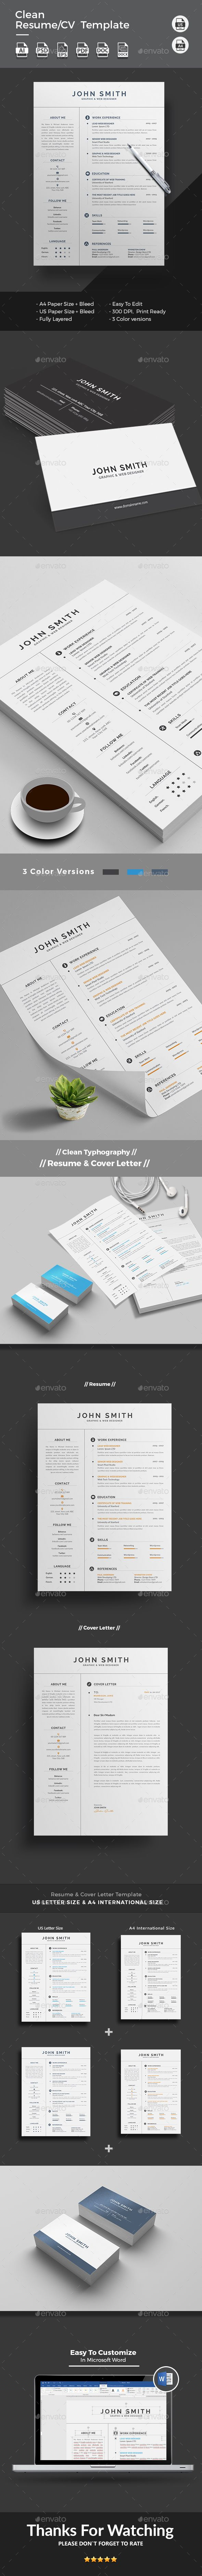 Resume | Identidad visual, Curriculums y Comprar